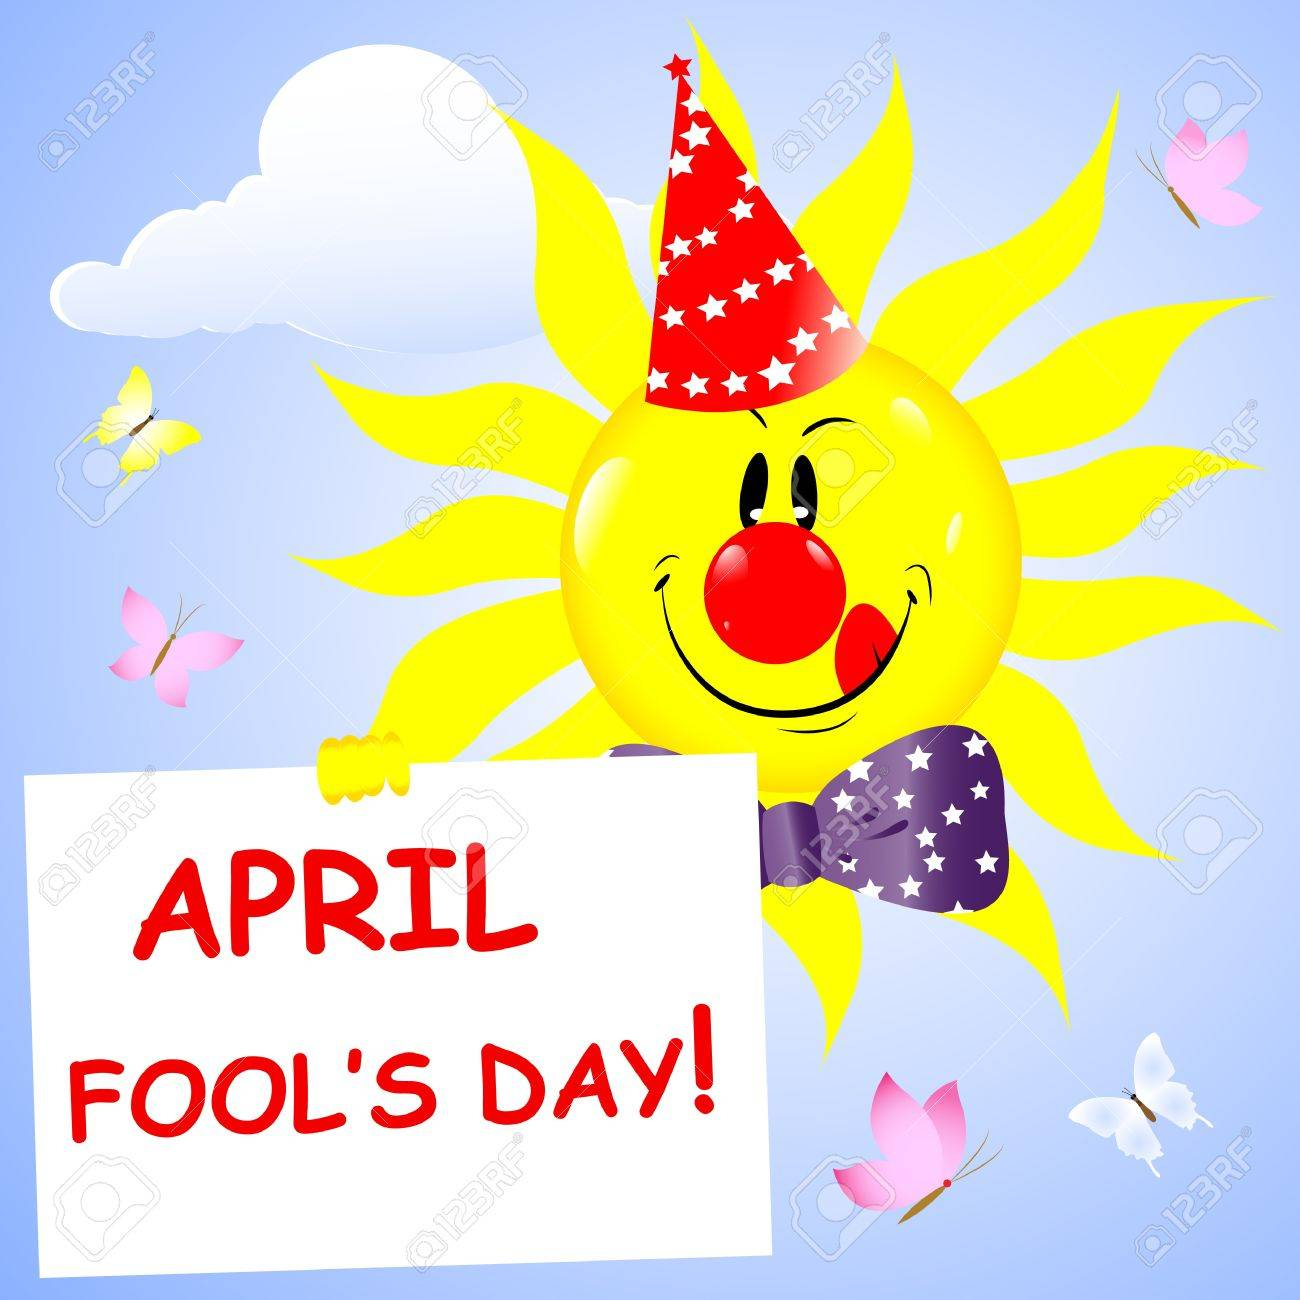 Fools day background. Sun with a red nose and fool's cap. Vector illustration. Stock Vector - 17533446